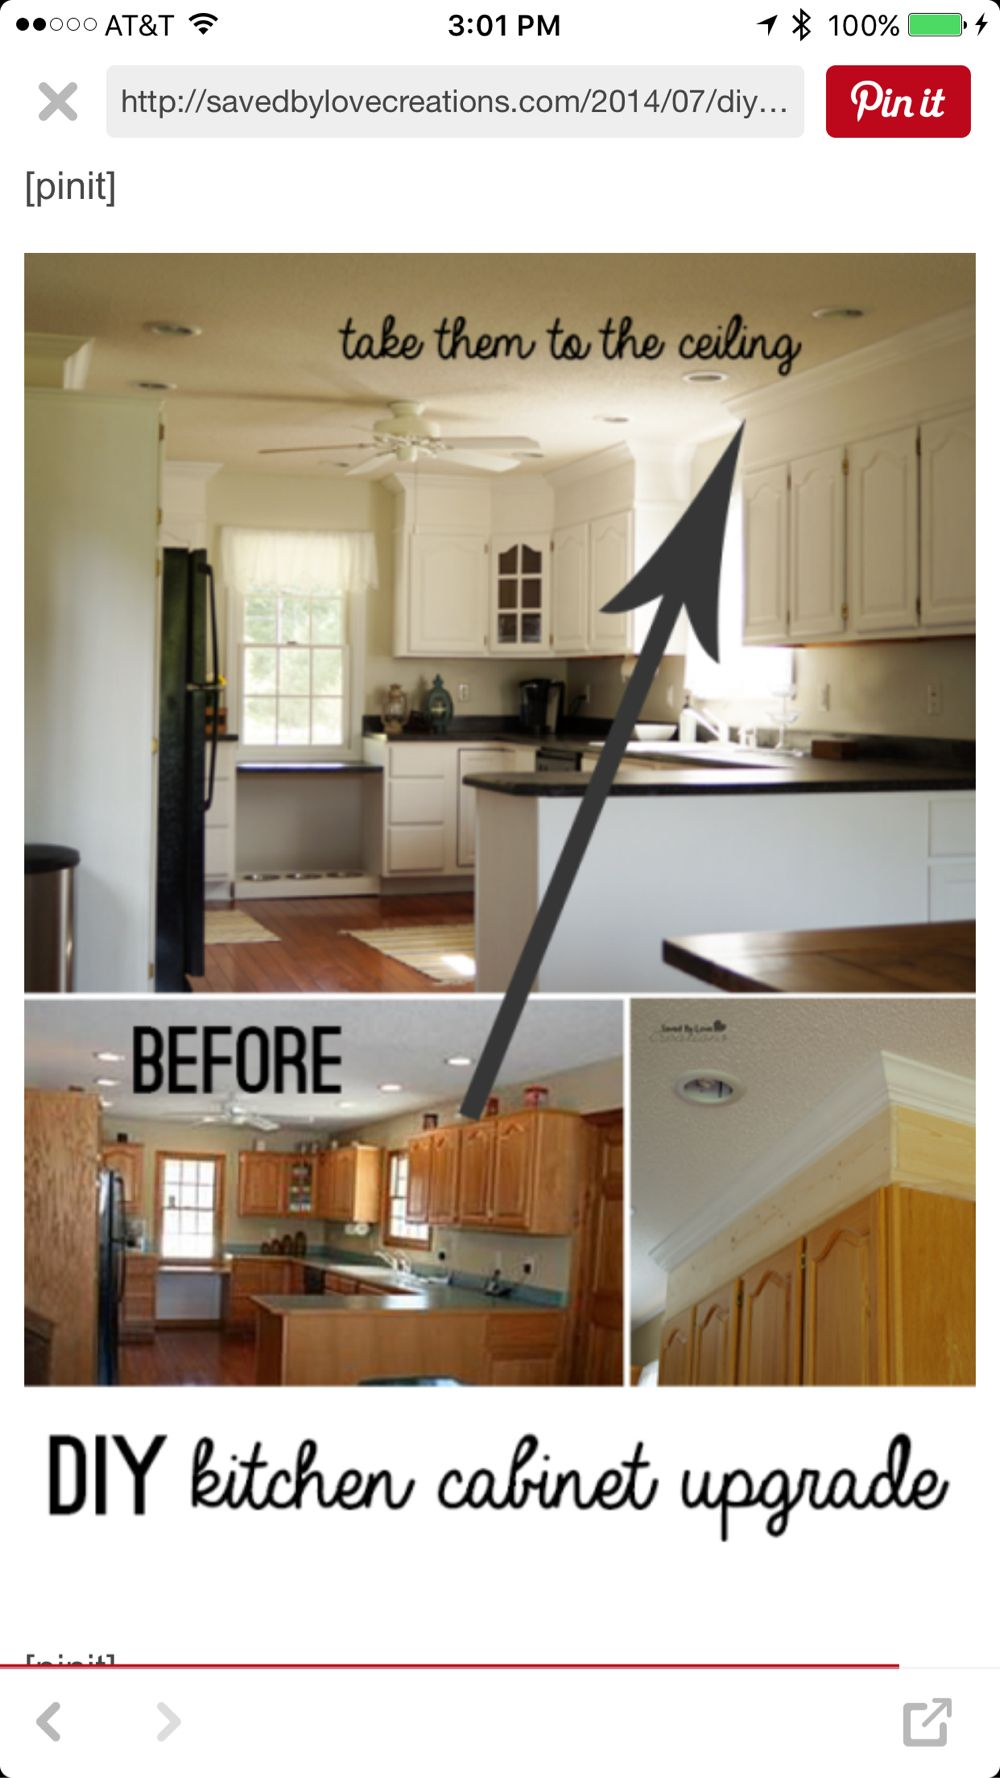 Diy kitchen cabinet upgrade with paint and crown molding saved by